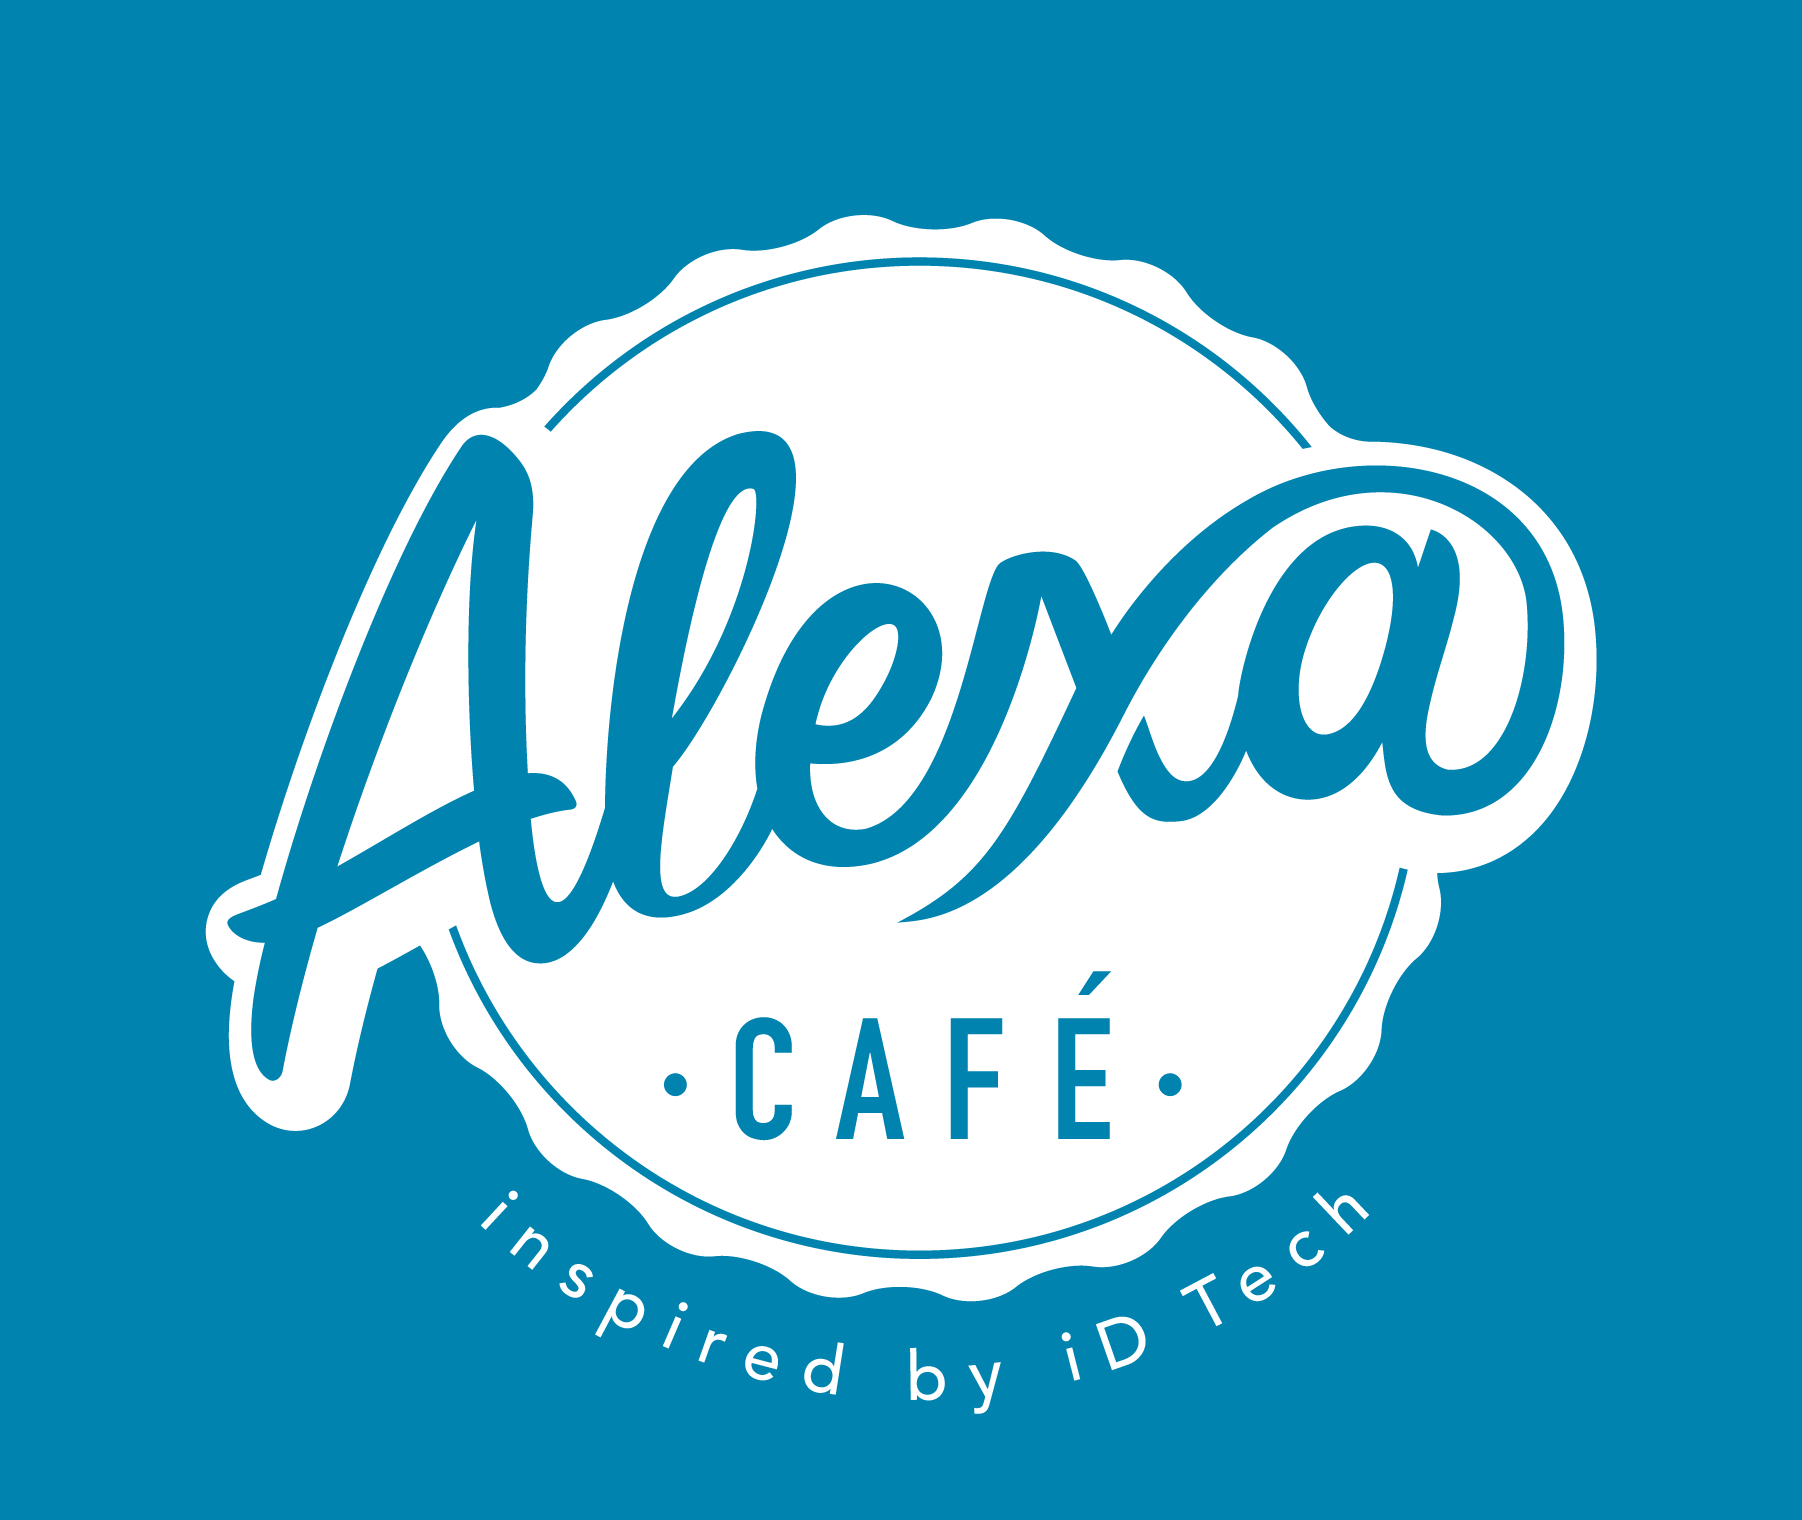 Alexa Cafe: All-Girls STEM Camp - Held at University of Denver